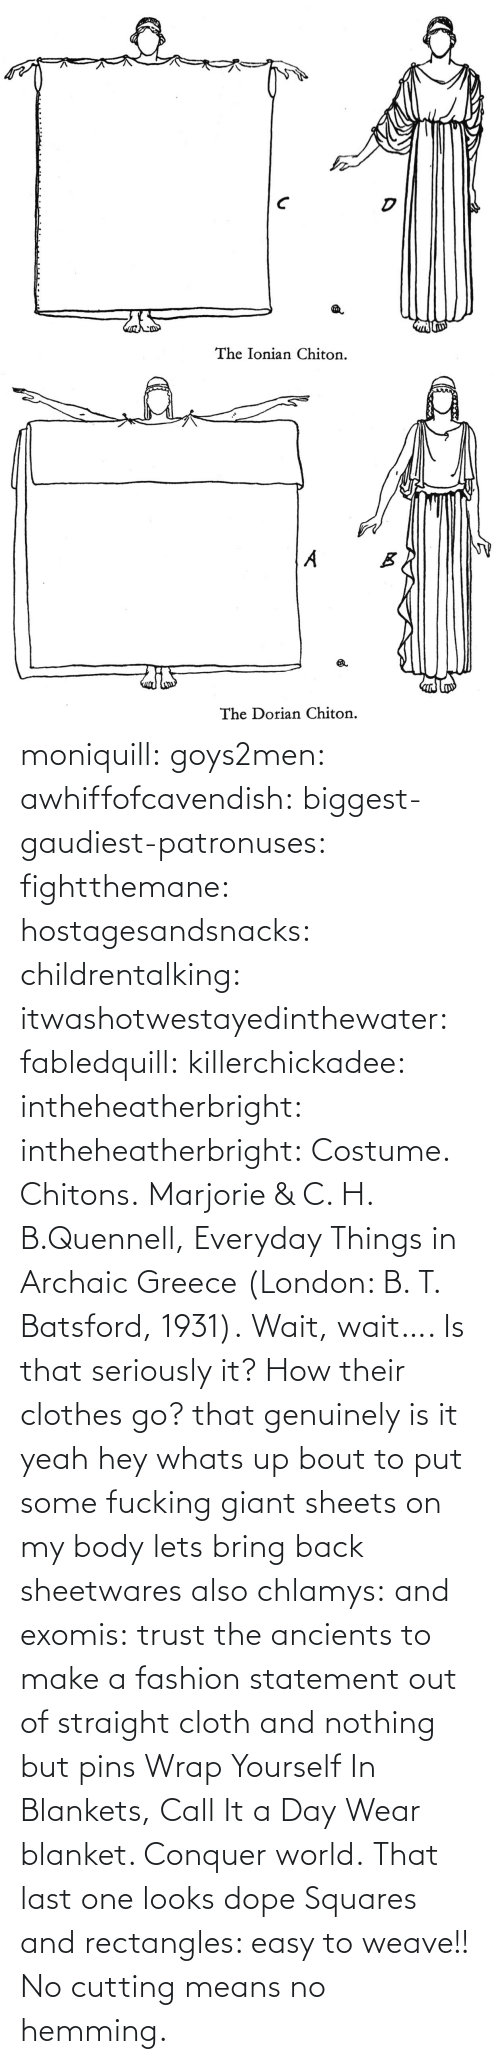 Beginning: moniquill: goys2men:  awhiffofcavendish:  biggest-gaudiest-patronuses:  fightthemane:  hostagesandsnacks:  childrentalking:  itwashotwestayedinthewater:  fabledquill:  killerchickadee:  intheheatherbright:  intheheatherbright:  Costume. Chitons.  Marjorie & C. H. B.Quennell, Everyday Things in Archaic Greece (London: B. T. Batsford, 1931).  Wait, wait…. Is that seriously it? How their clothes go?  that genuinely is it  yeah hey whats up bout to put some fucking giant sheets on my body  lets bring back sheetwares  also chlamys: and exomis:  trust the ancients to make a fashion statement out of straight cloth and nothing but pins  Wrap Yourself In Blankets, Call It a Day  Wear blanket. Conquer world.   That last one looks dope    Squares and rectangles: easy to weave!! No cutting means no hemming.